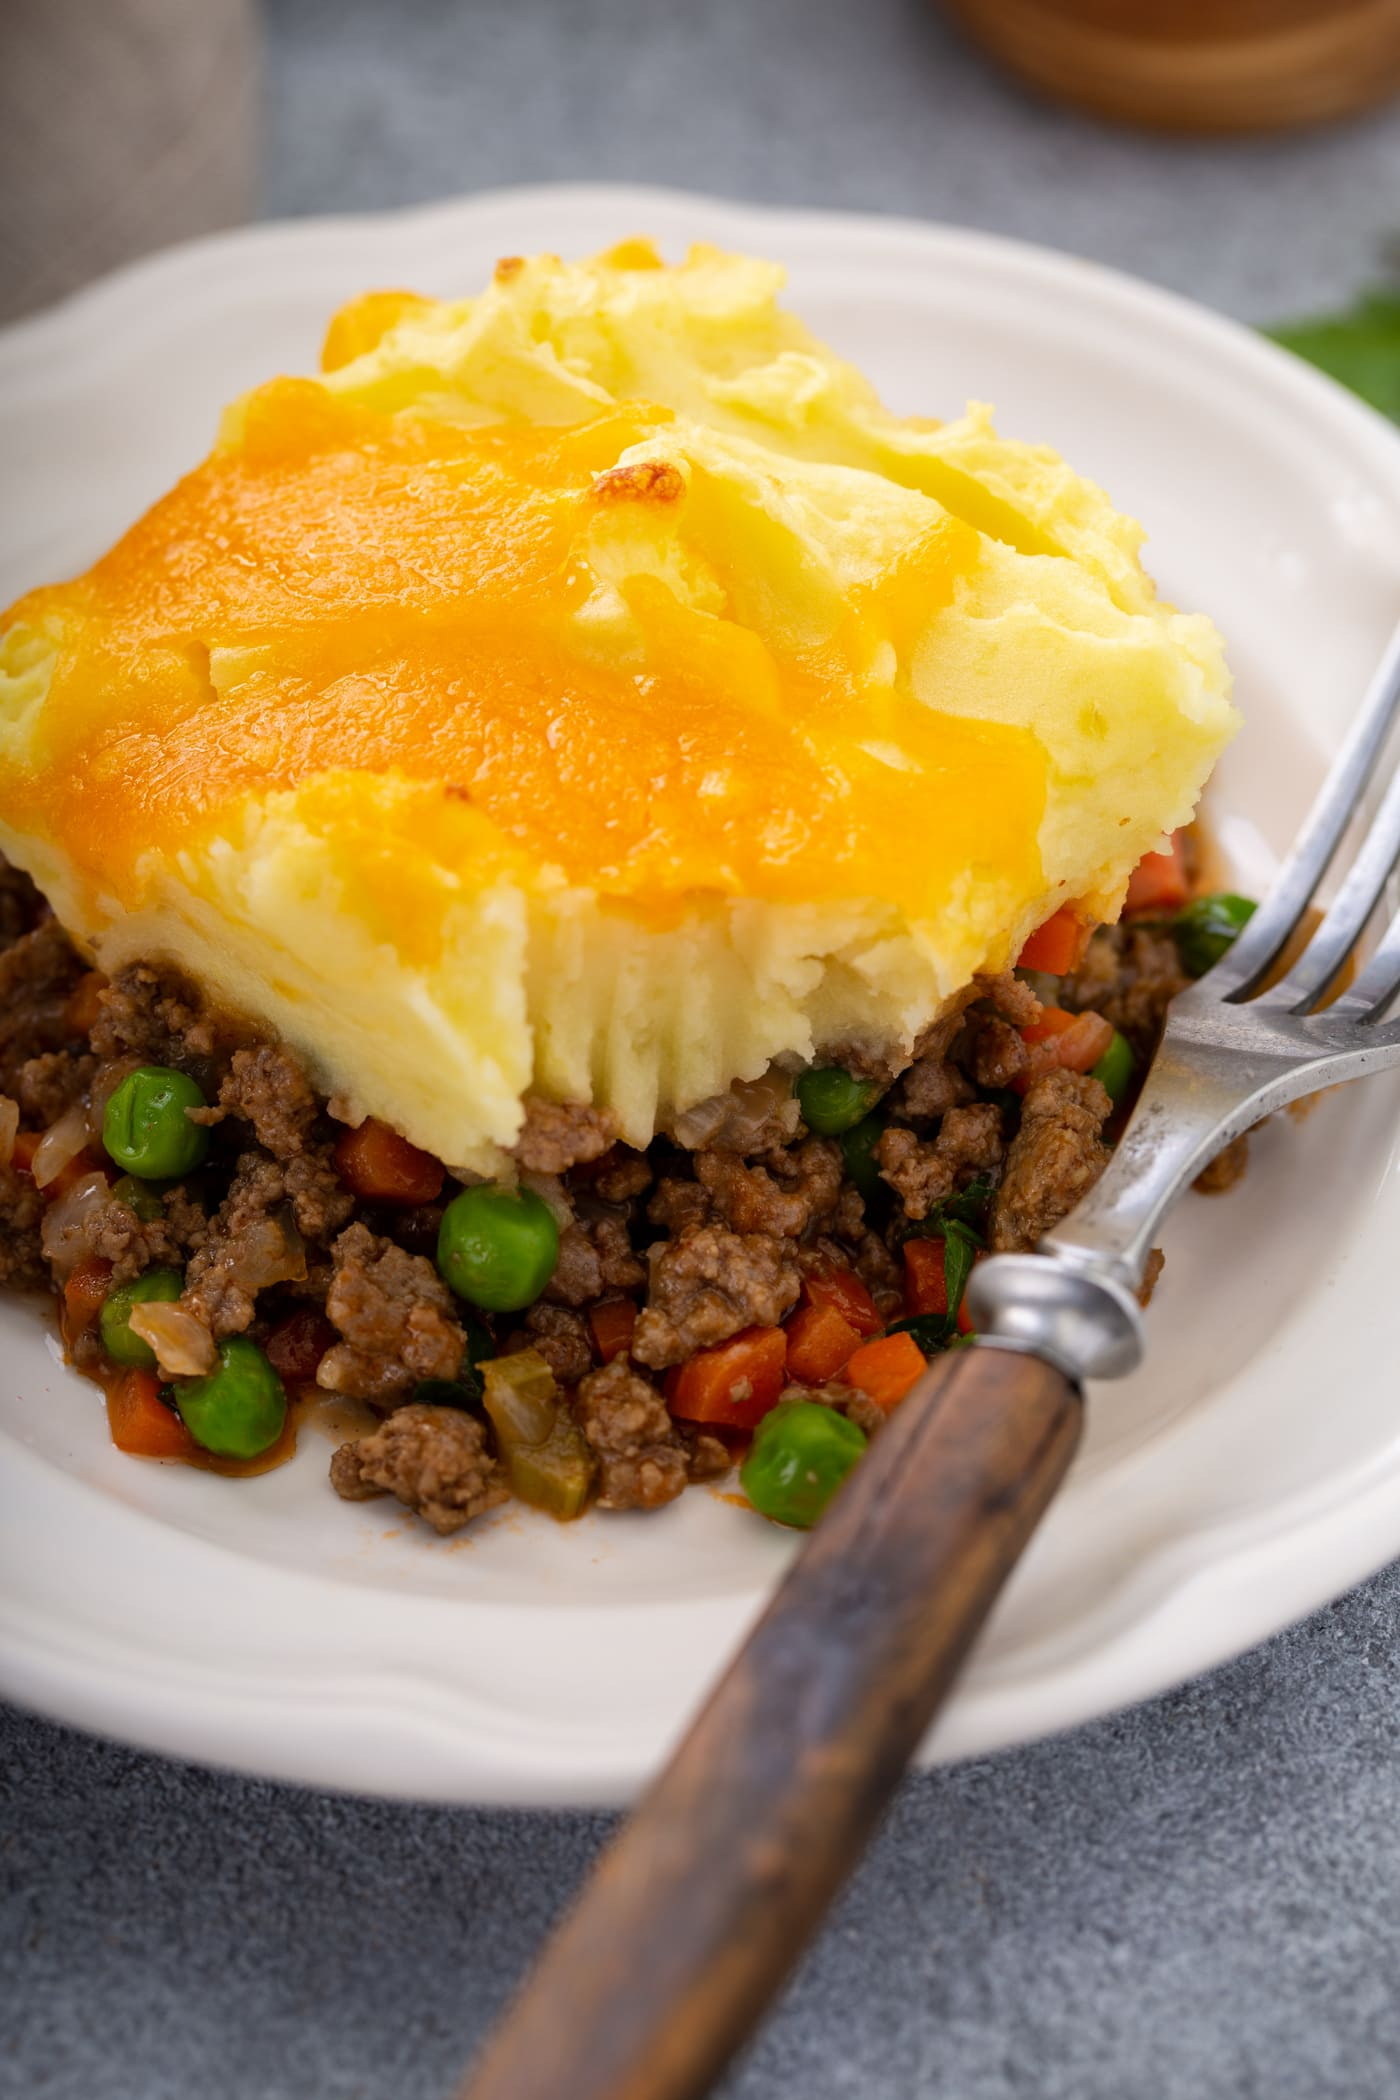 A serving of shepherd's pie on a white plate with a fork resting beside it. You can see the rich ground beef and vegetable filling, the mashed potatoes on top, and the yellow melted cheddar cheese topping it all.